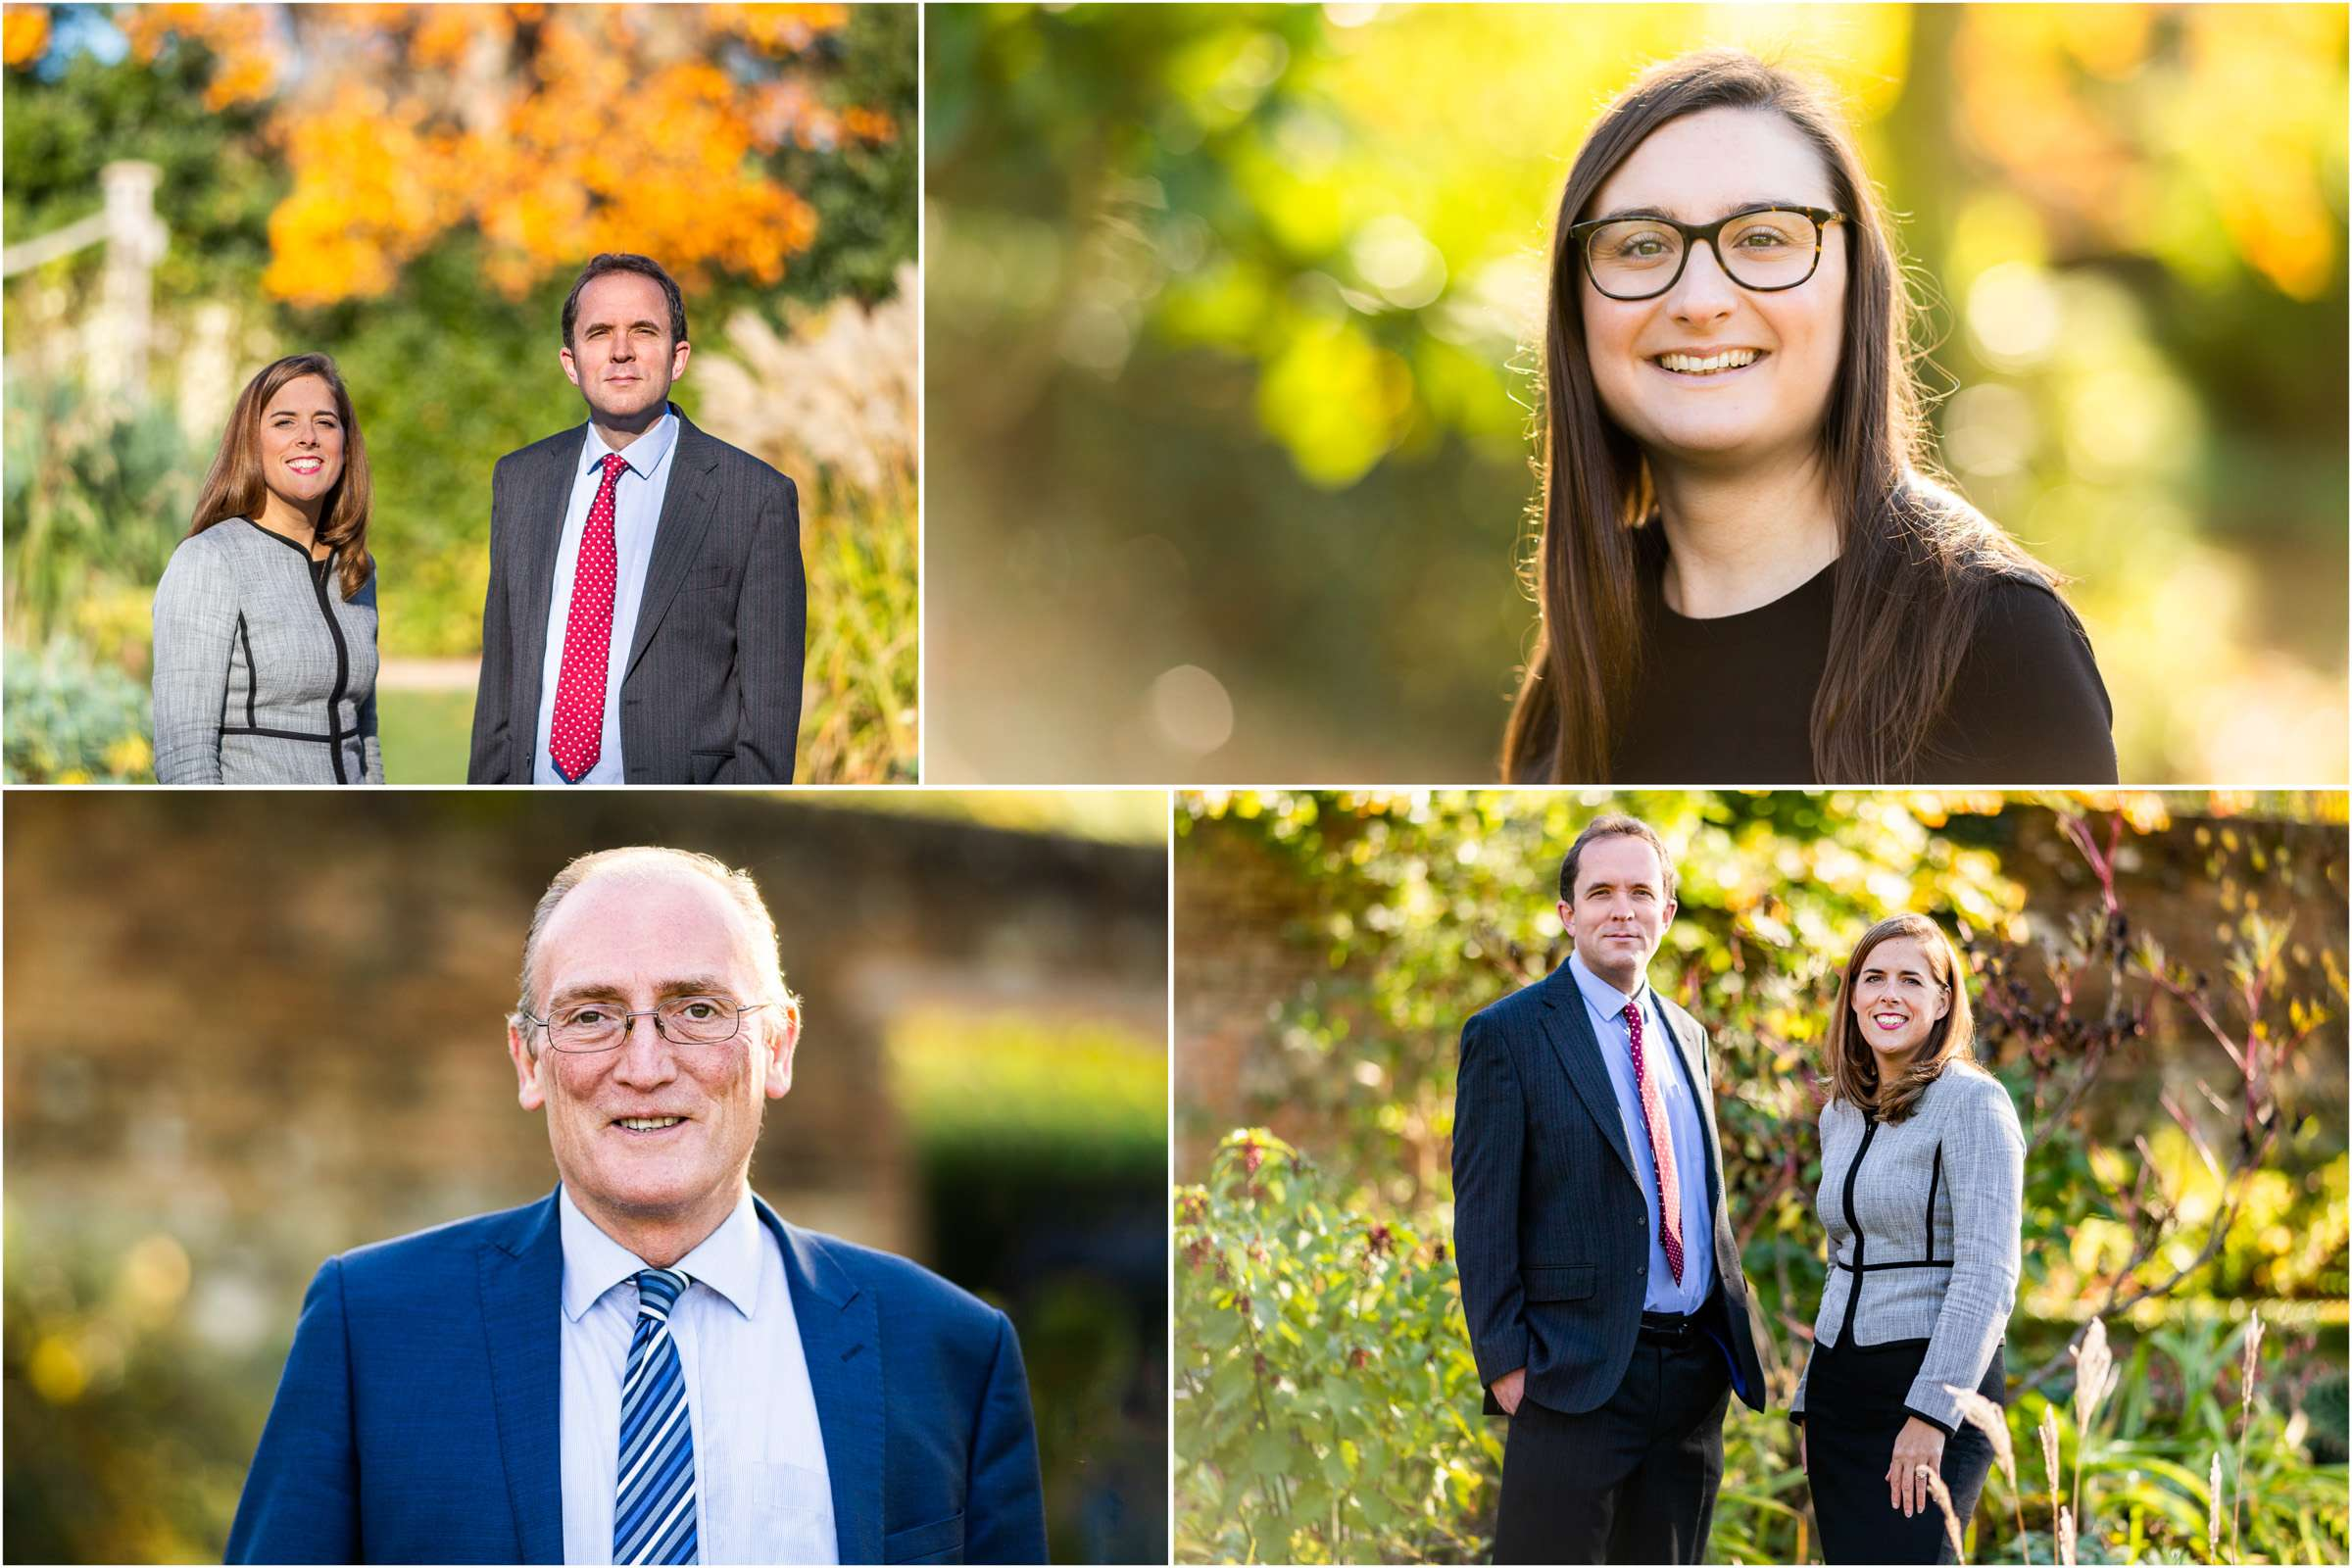 A montage of four headshot portrait images taken in Chichester, West Sussex